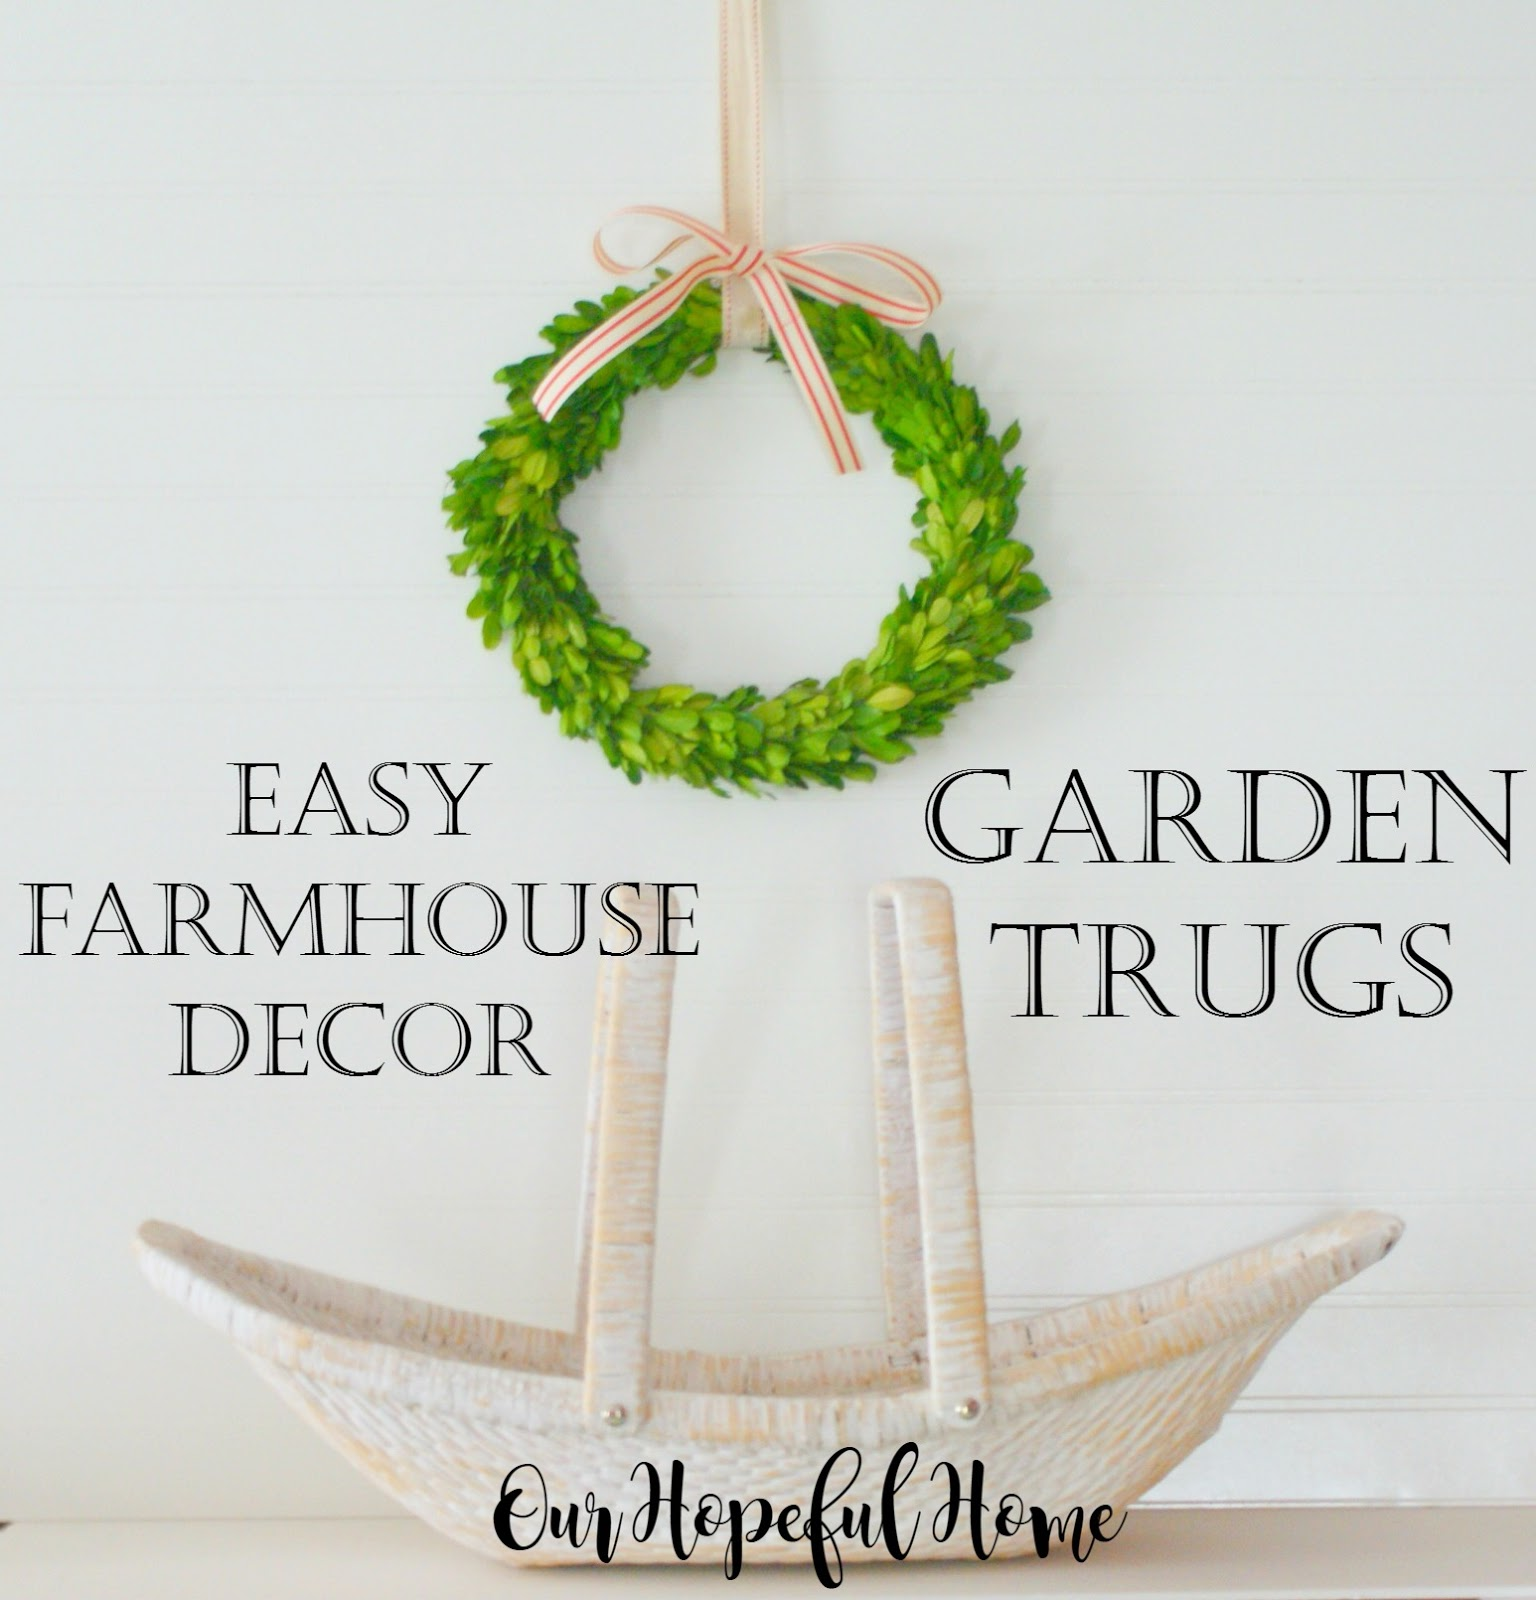 our hopeful home: easy farmhouse decor: garden trugs